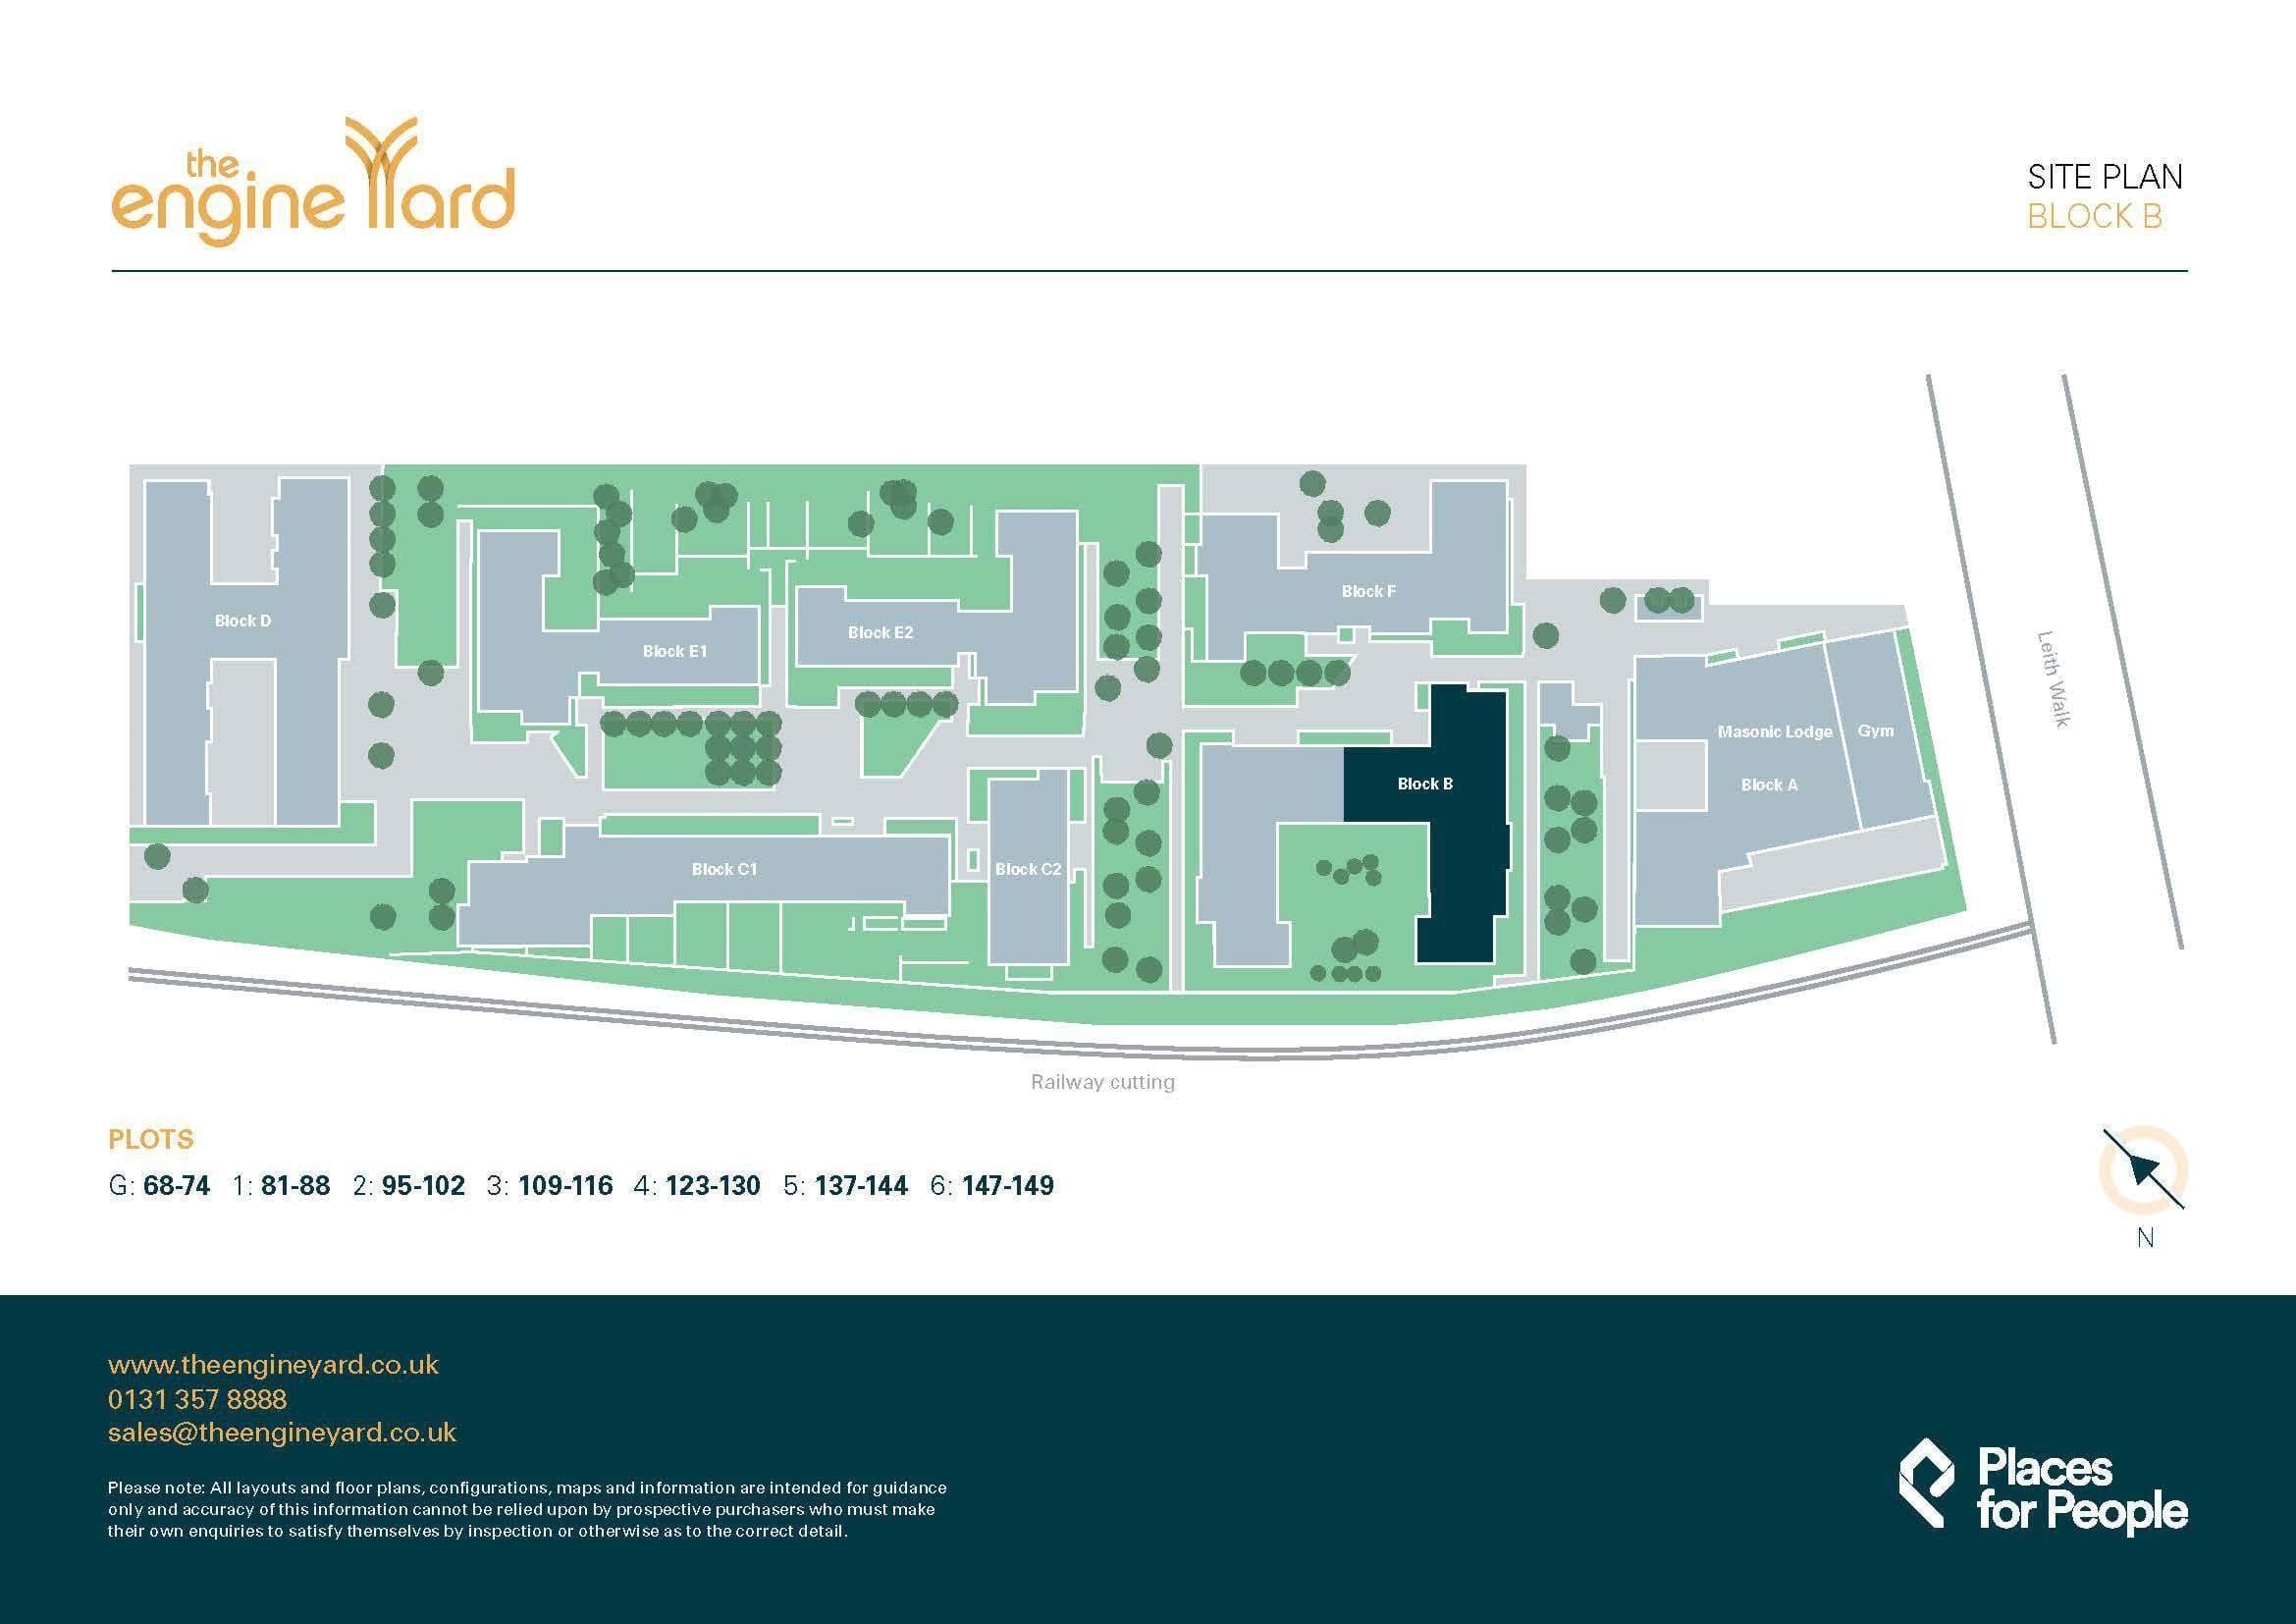 The Engine Yard site plan